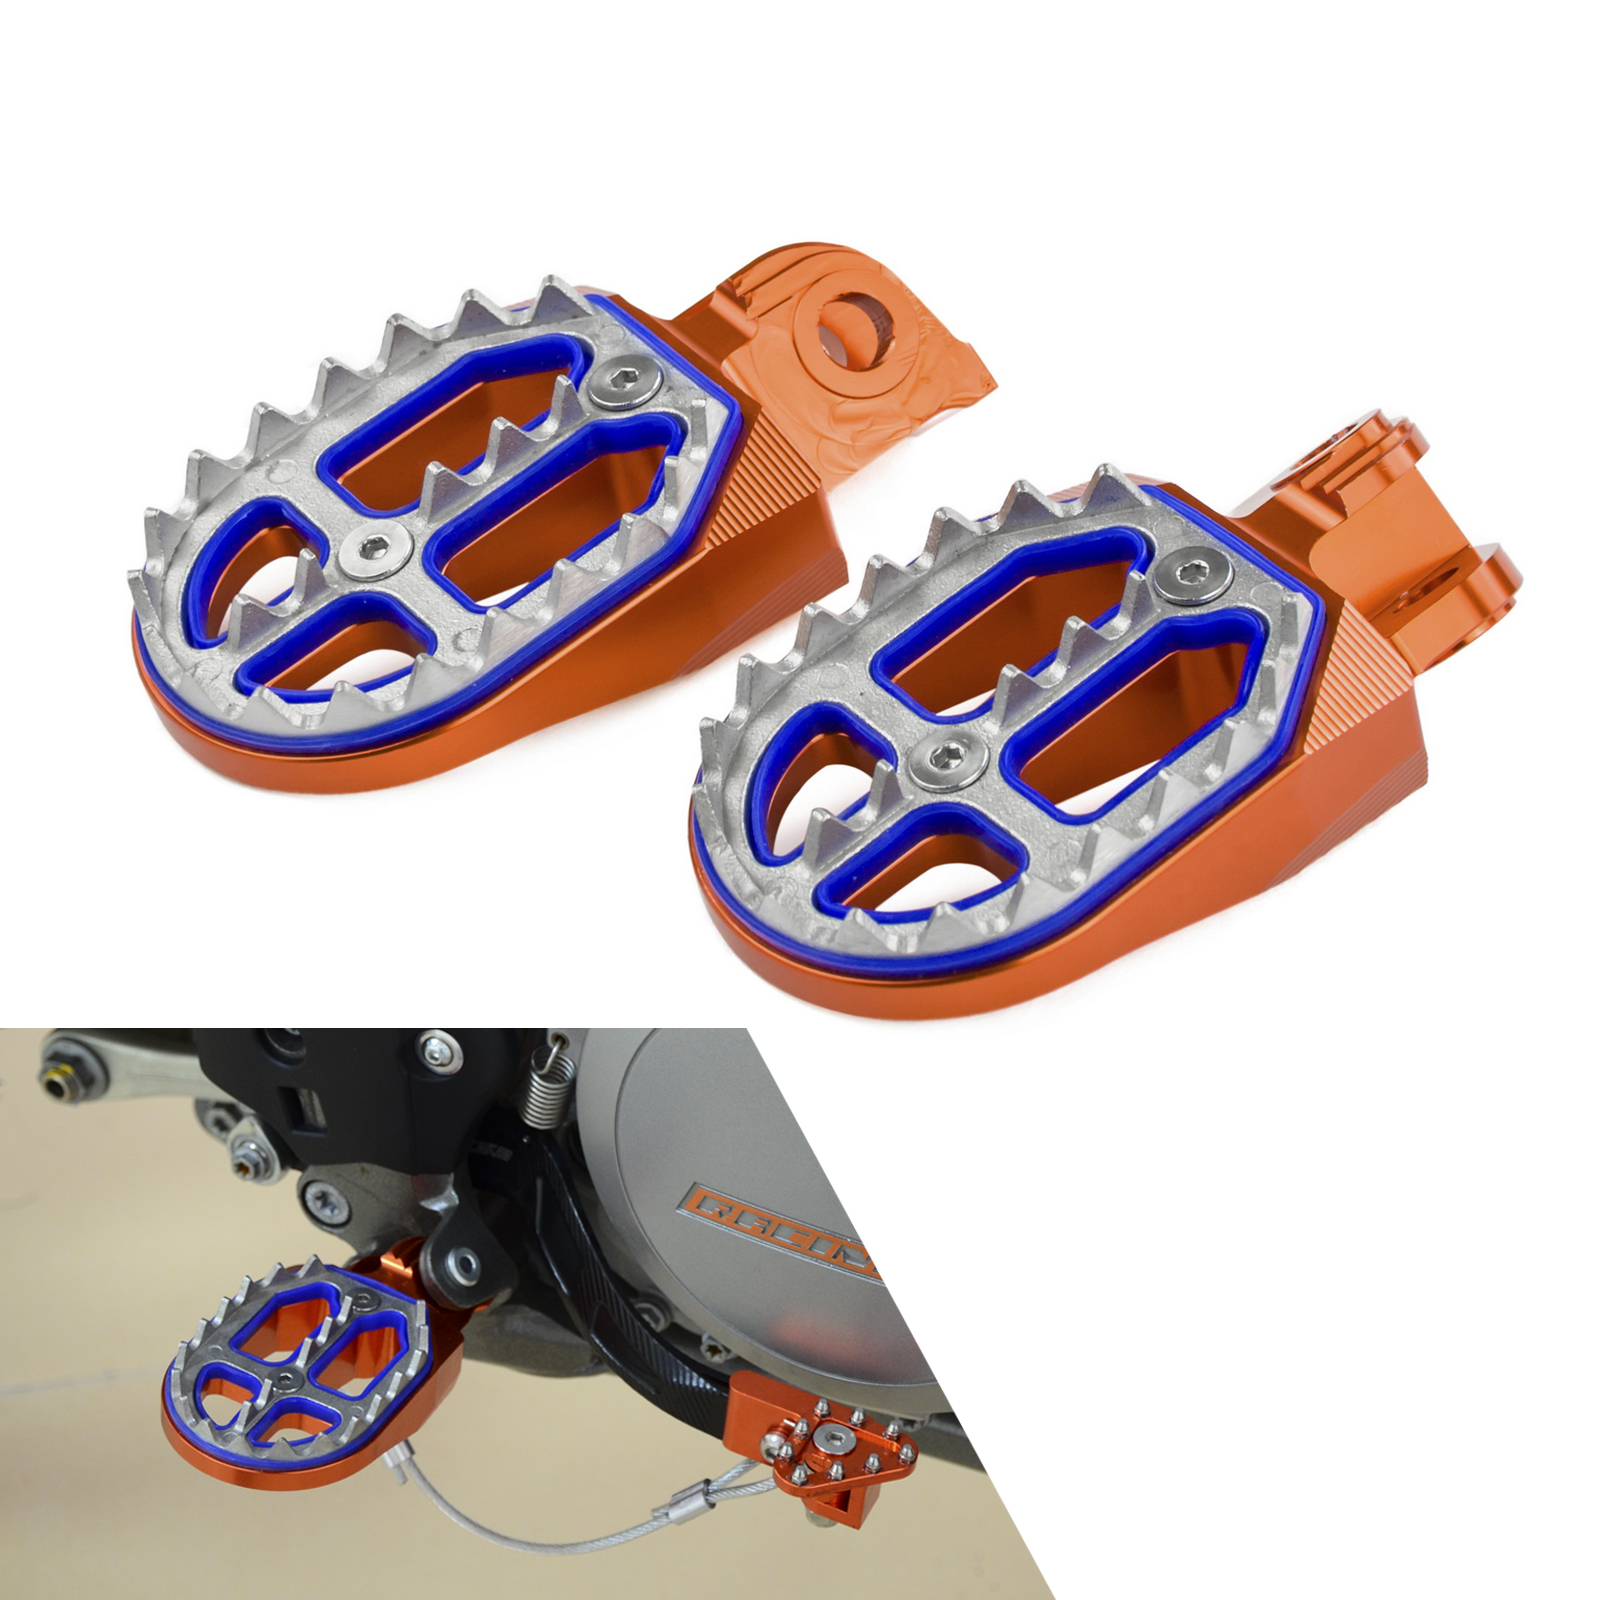 Racing Foot Pegs Rests Pedals For KTM EXC EXCF XC XCF XCW SX SXF 65 85 125 250 350 450 525 530 690 950 990 1190 1290 SMC ENDURO